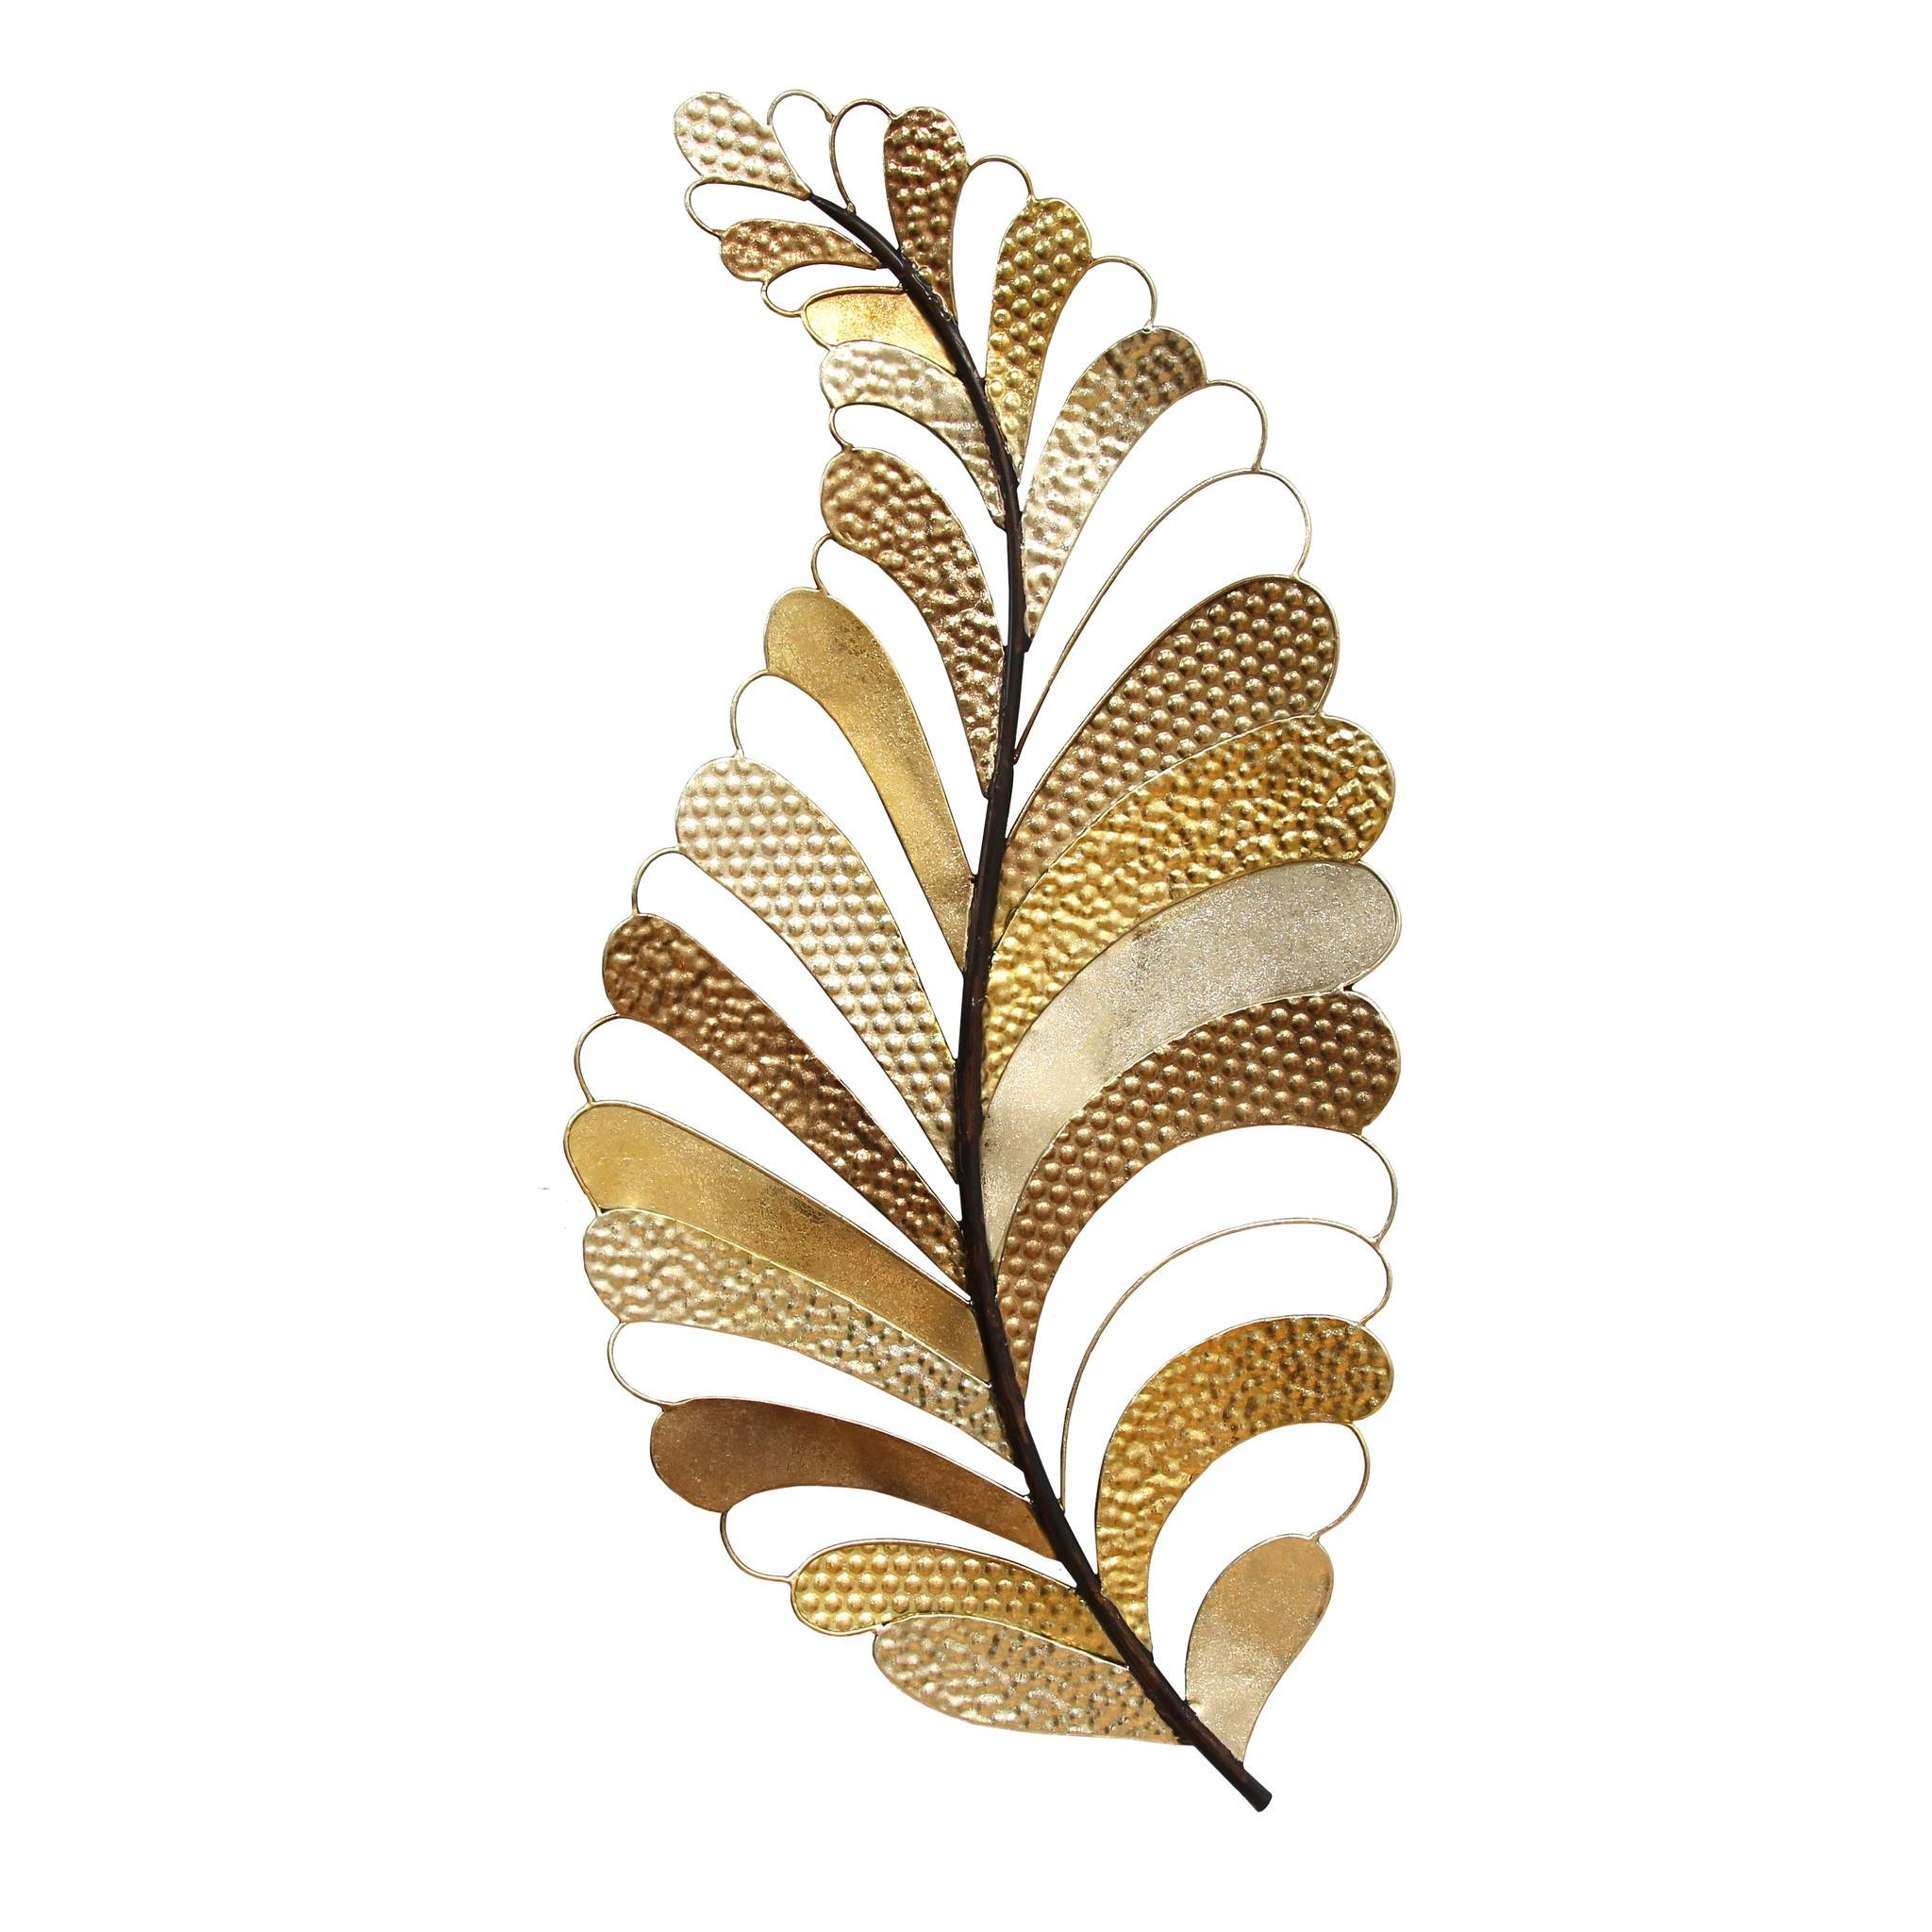 Articles With Metal Leaf Wall Decor Online Tag: Leaf Wall Decor Pertaining To Most Up To Date Palm Leaf Wall Decor (View 5 of 25)